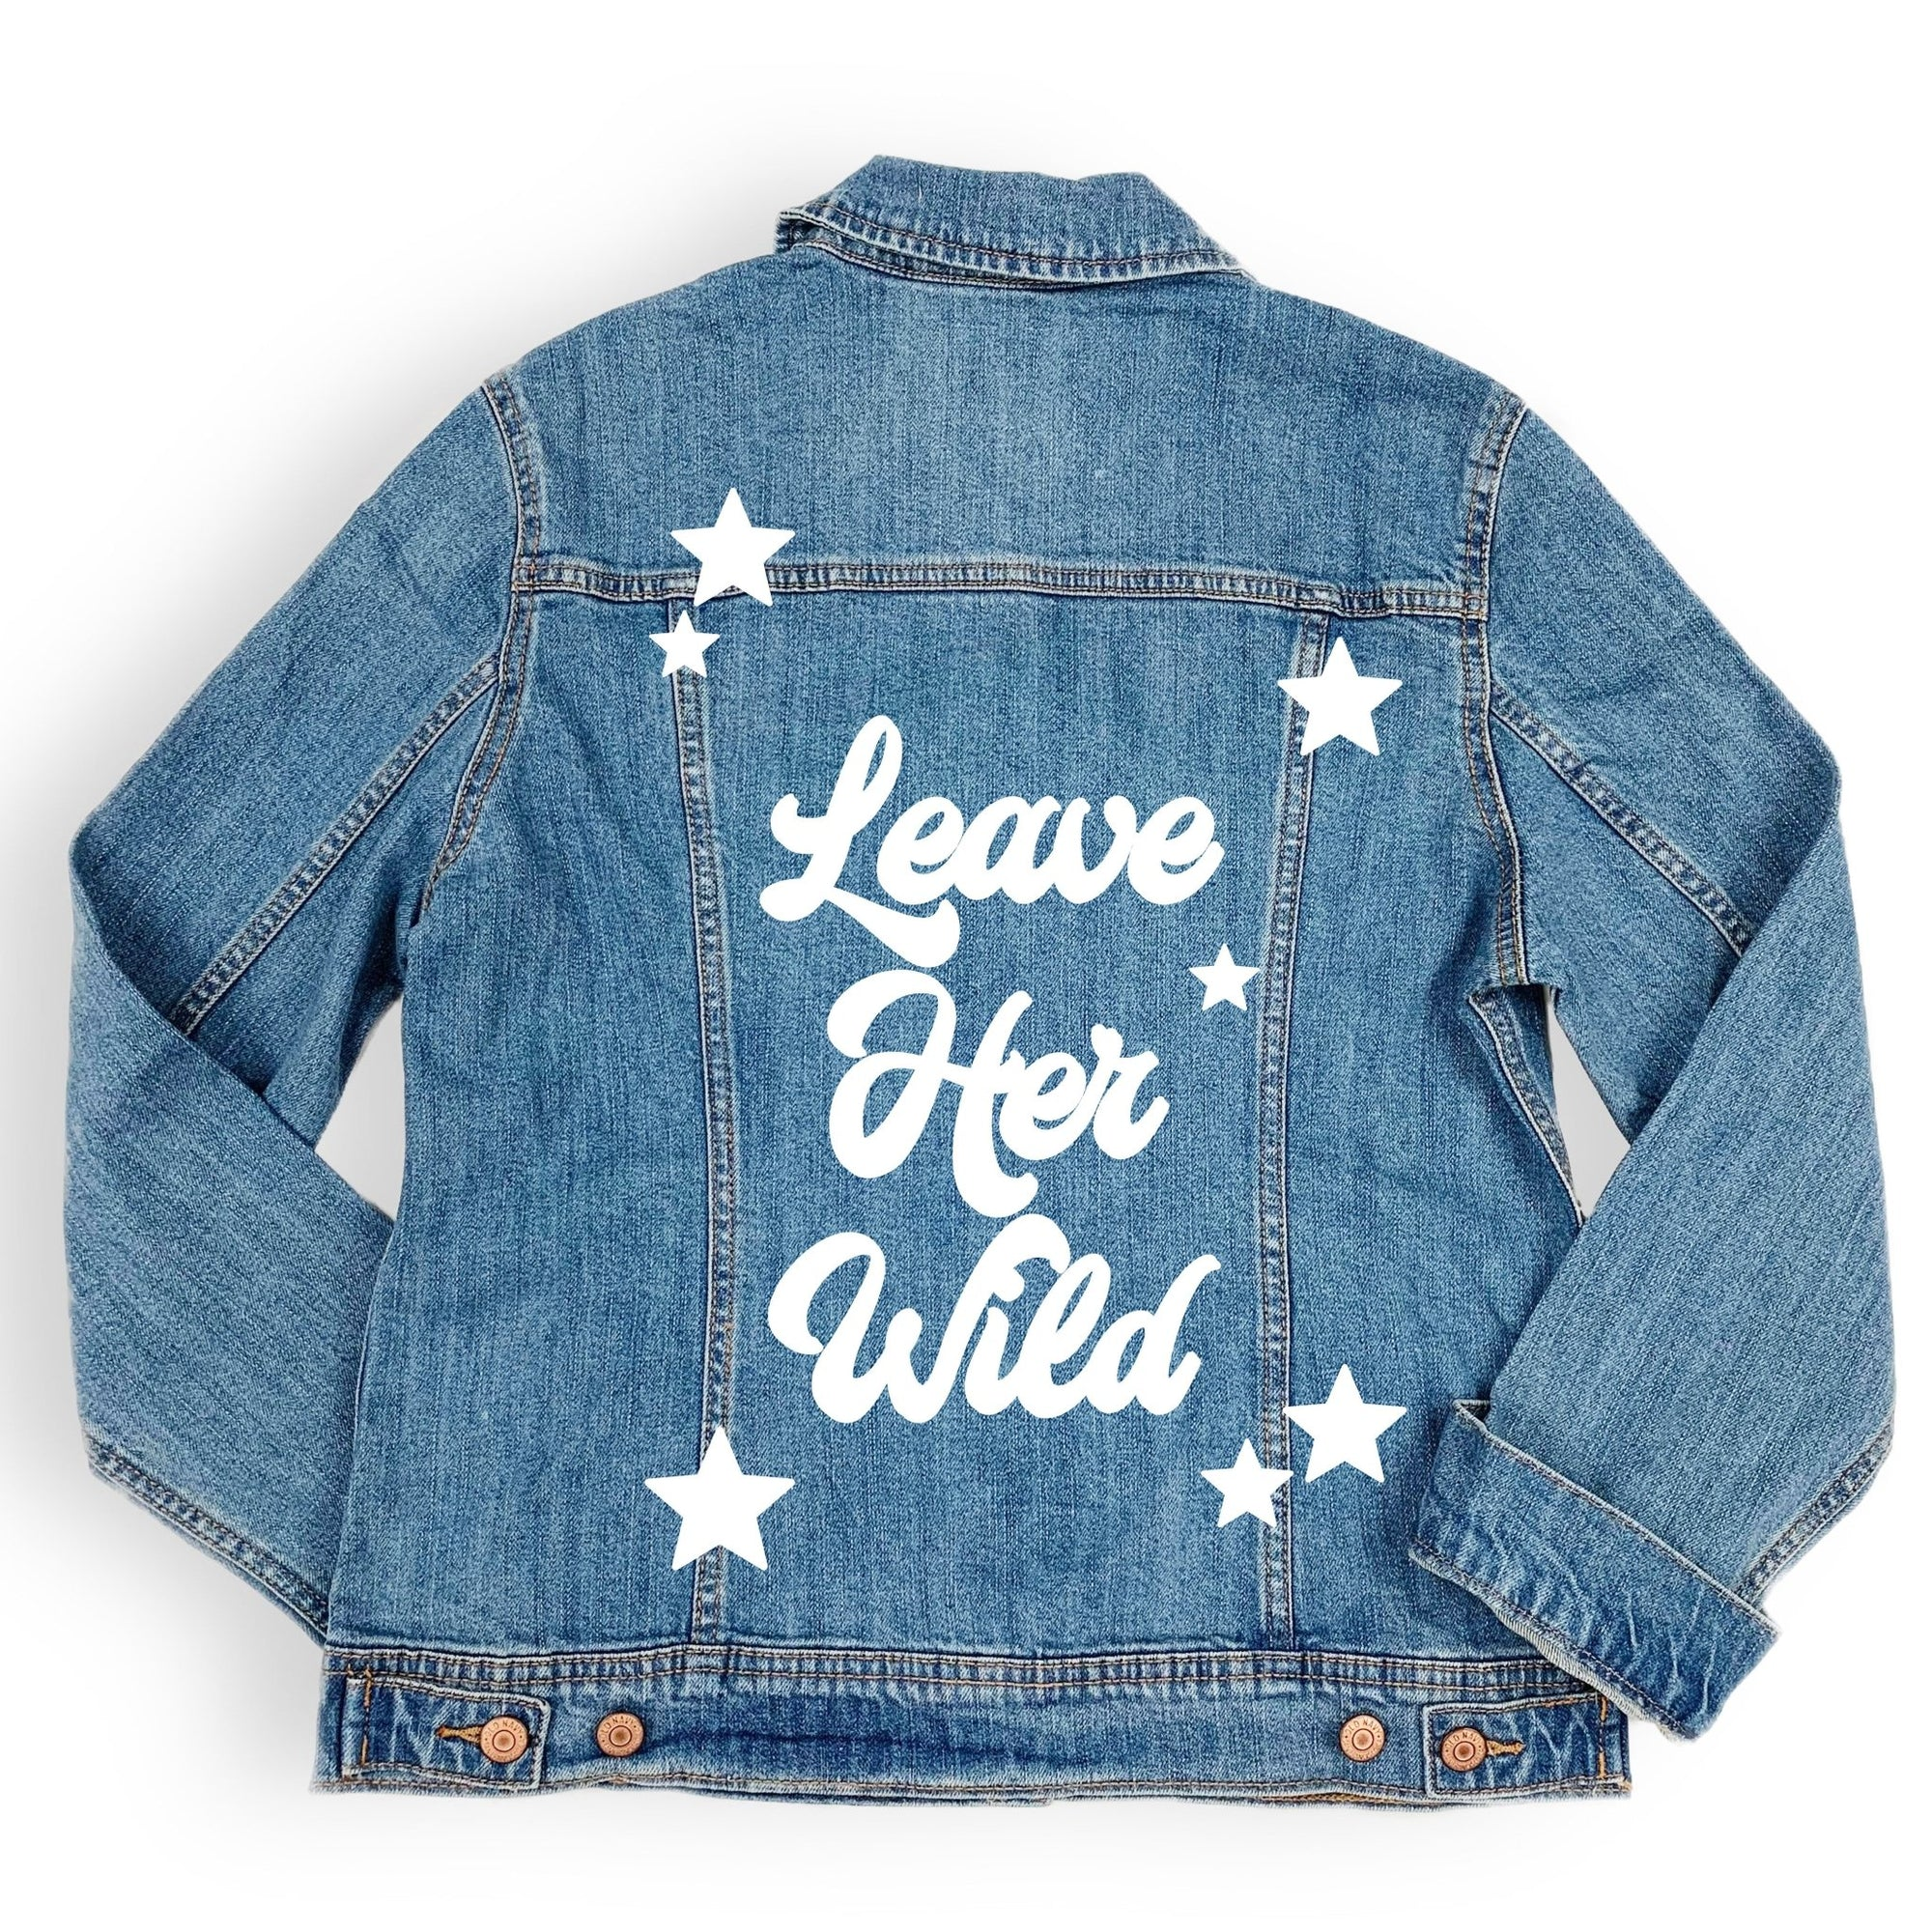 Leave Her Wild Denim Jacket - Sprinkled With Pink #bachelorette #custom #gifts